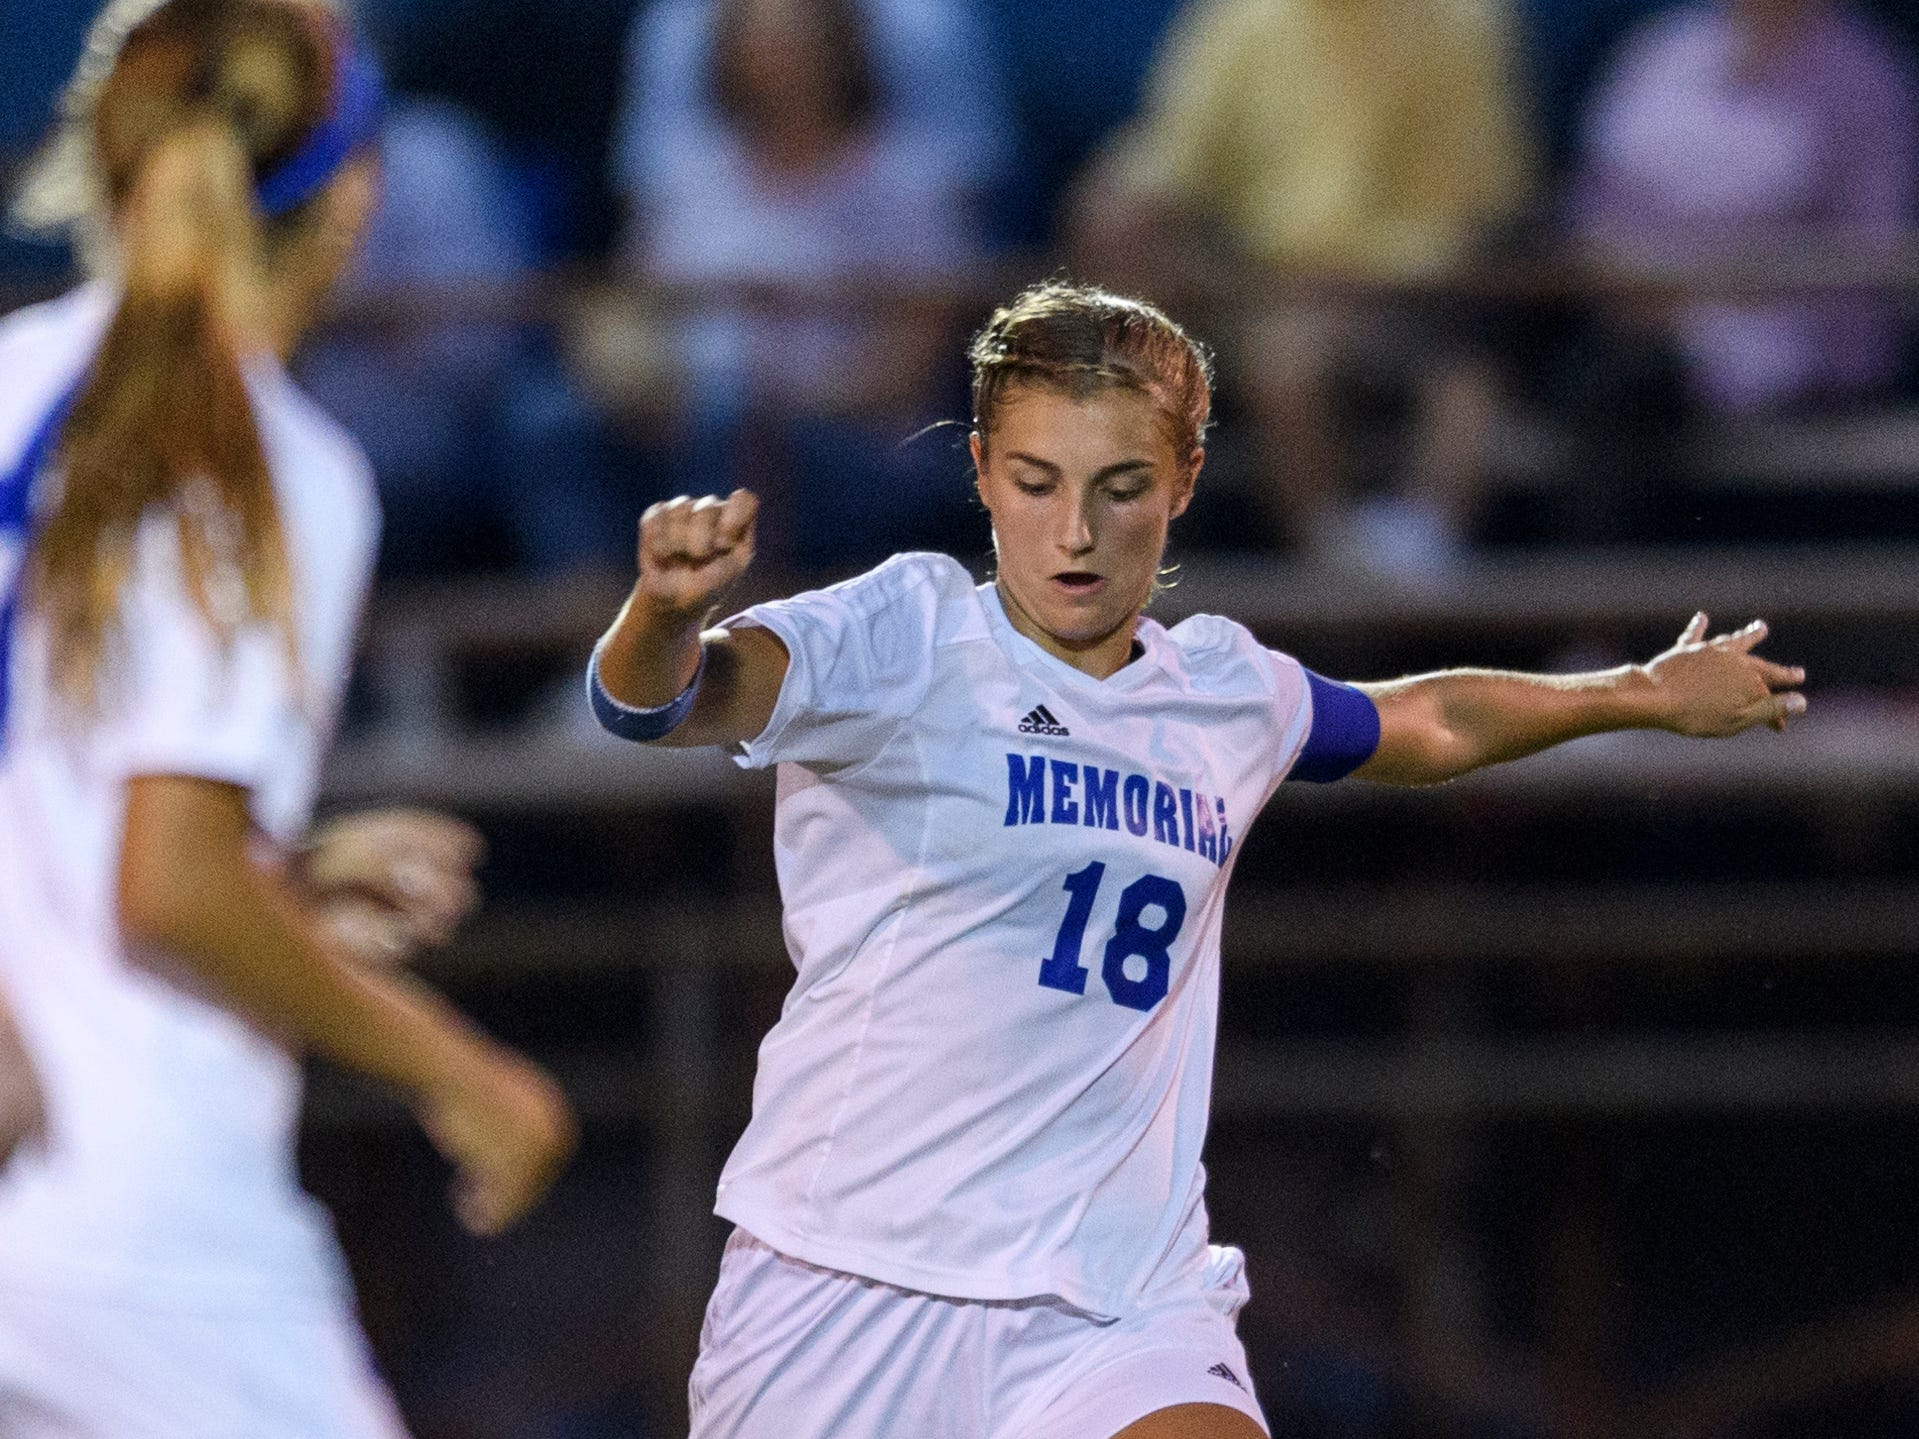 Memorial's Annah Hopkins (18) makes a pass during the game against the Mater Dei Wildcats at the EVSC Soccer Fields in Evansville, Ind., Monday, Aug. 20, 2018. The Tigers defeated the Wildcats 4-0.